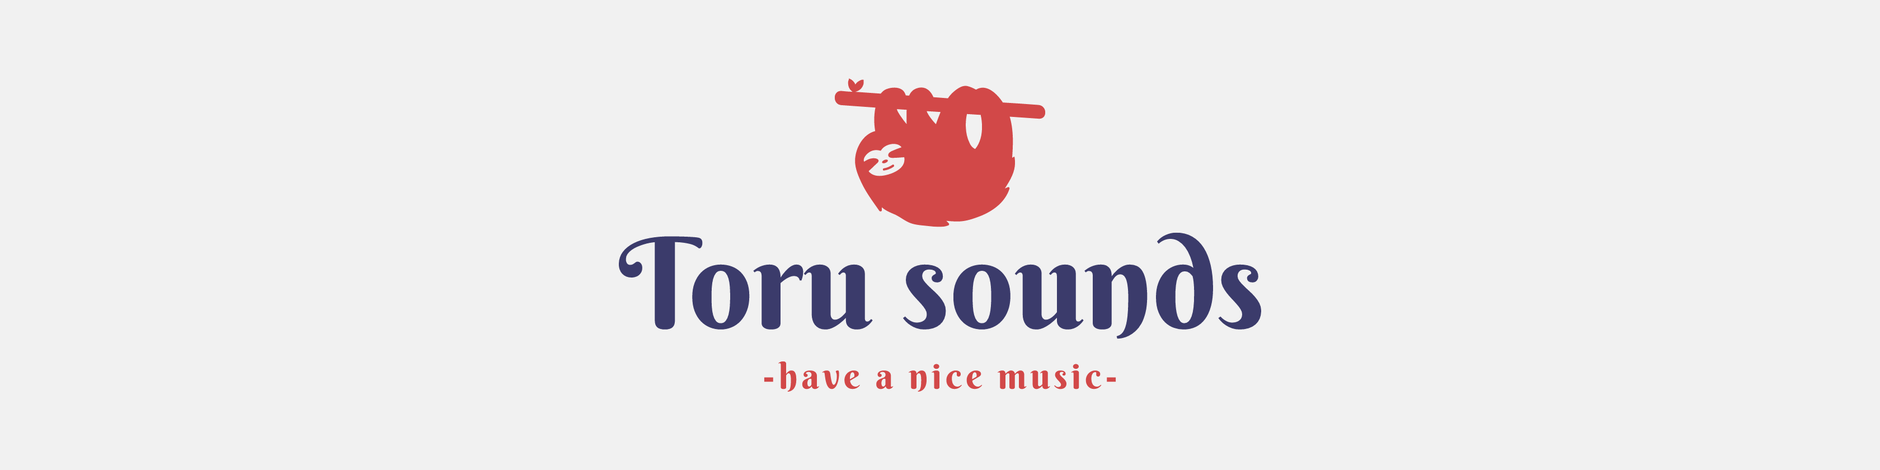 Toru sounds Official Shop